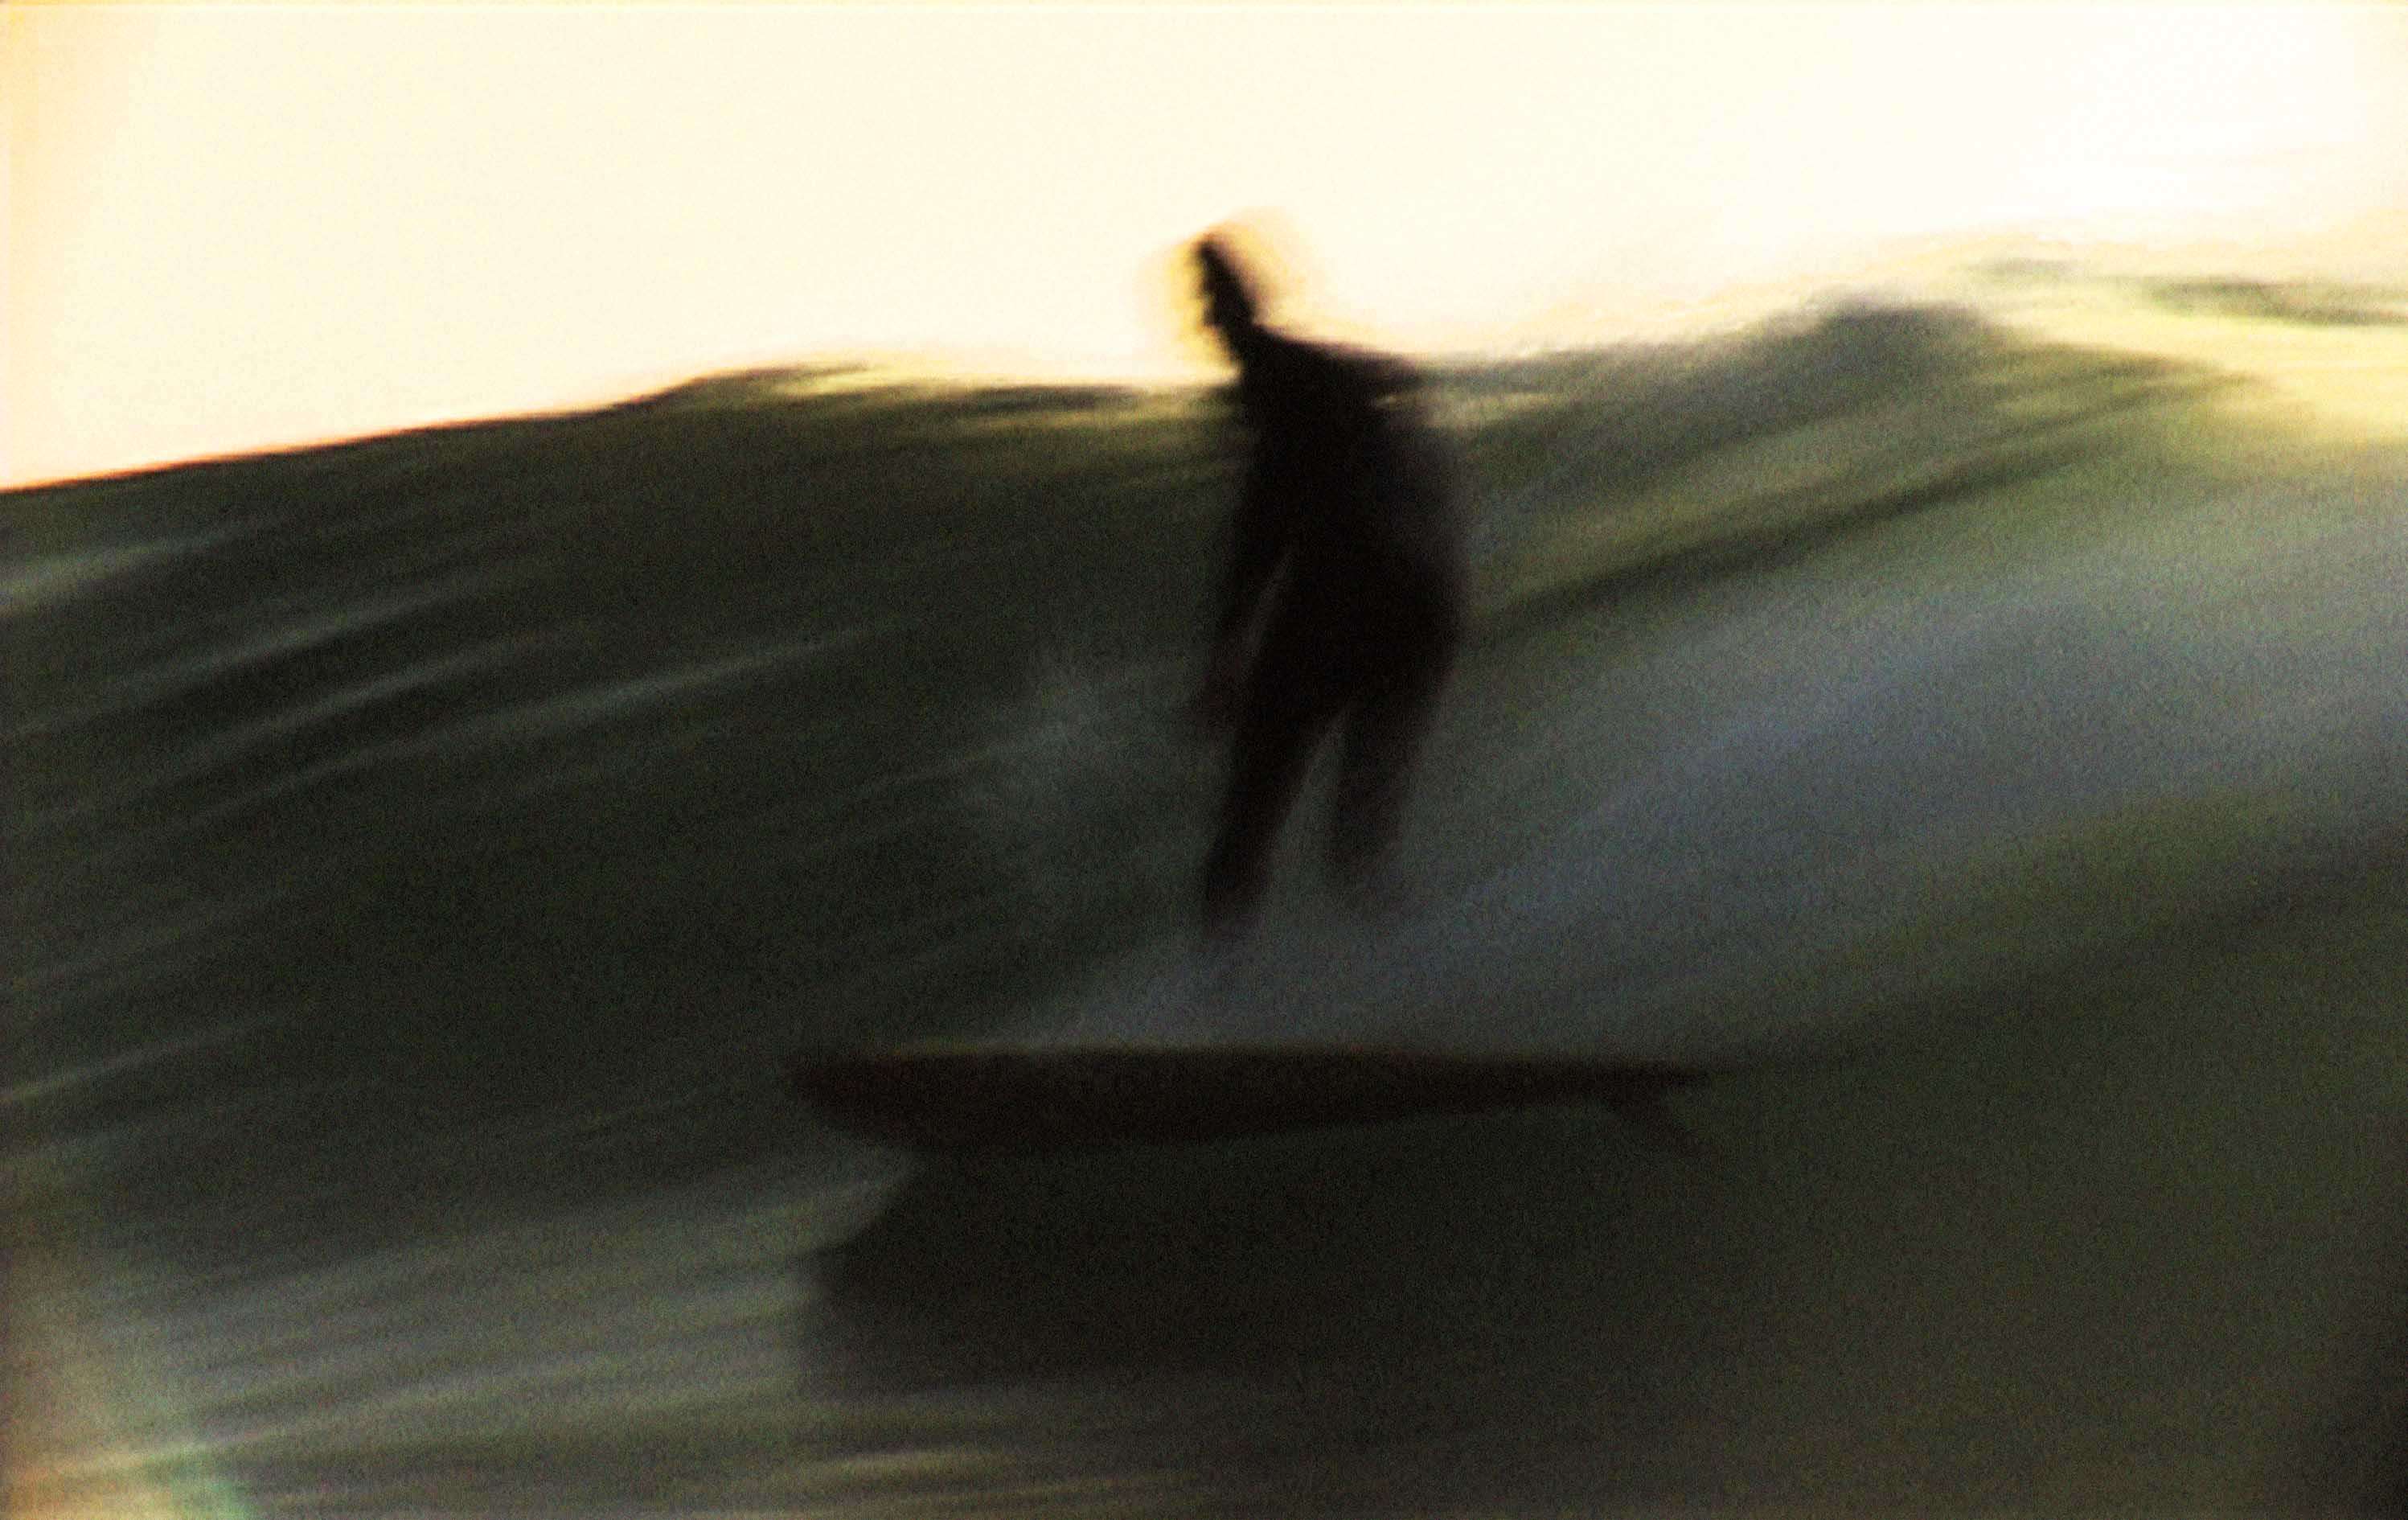 Still from Lost in the Ether riding Michael Peterson's surfboard